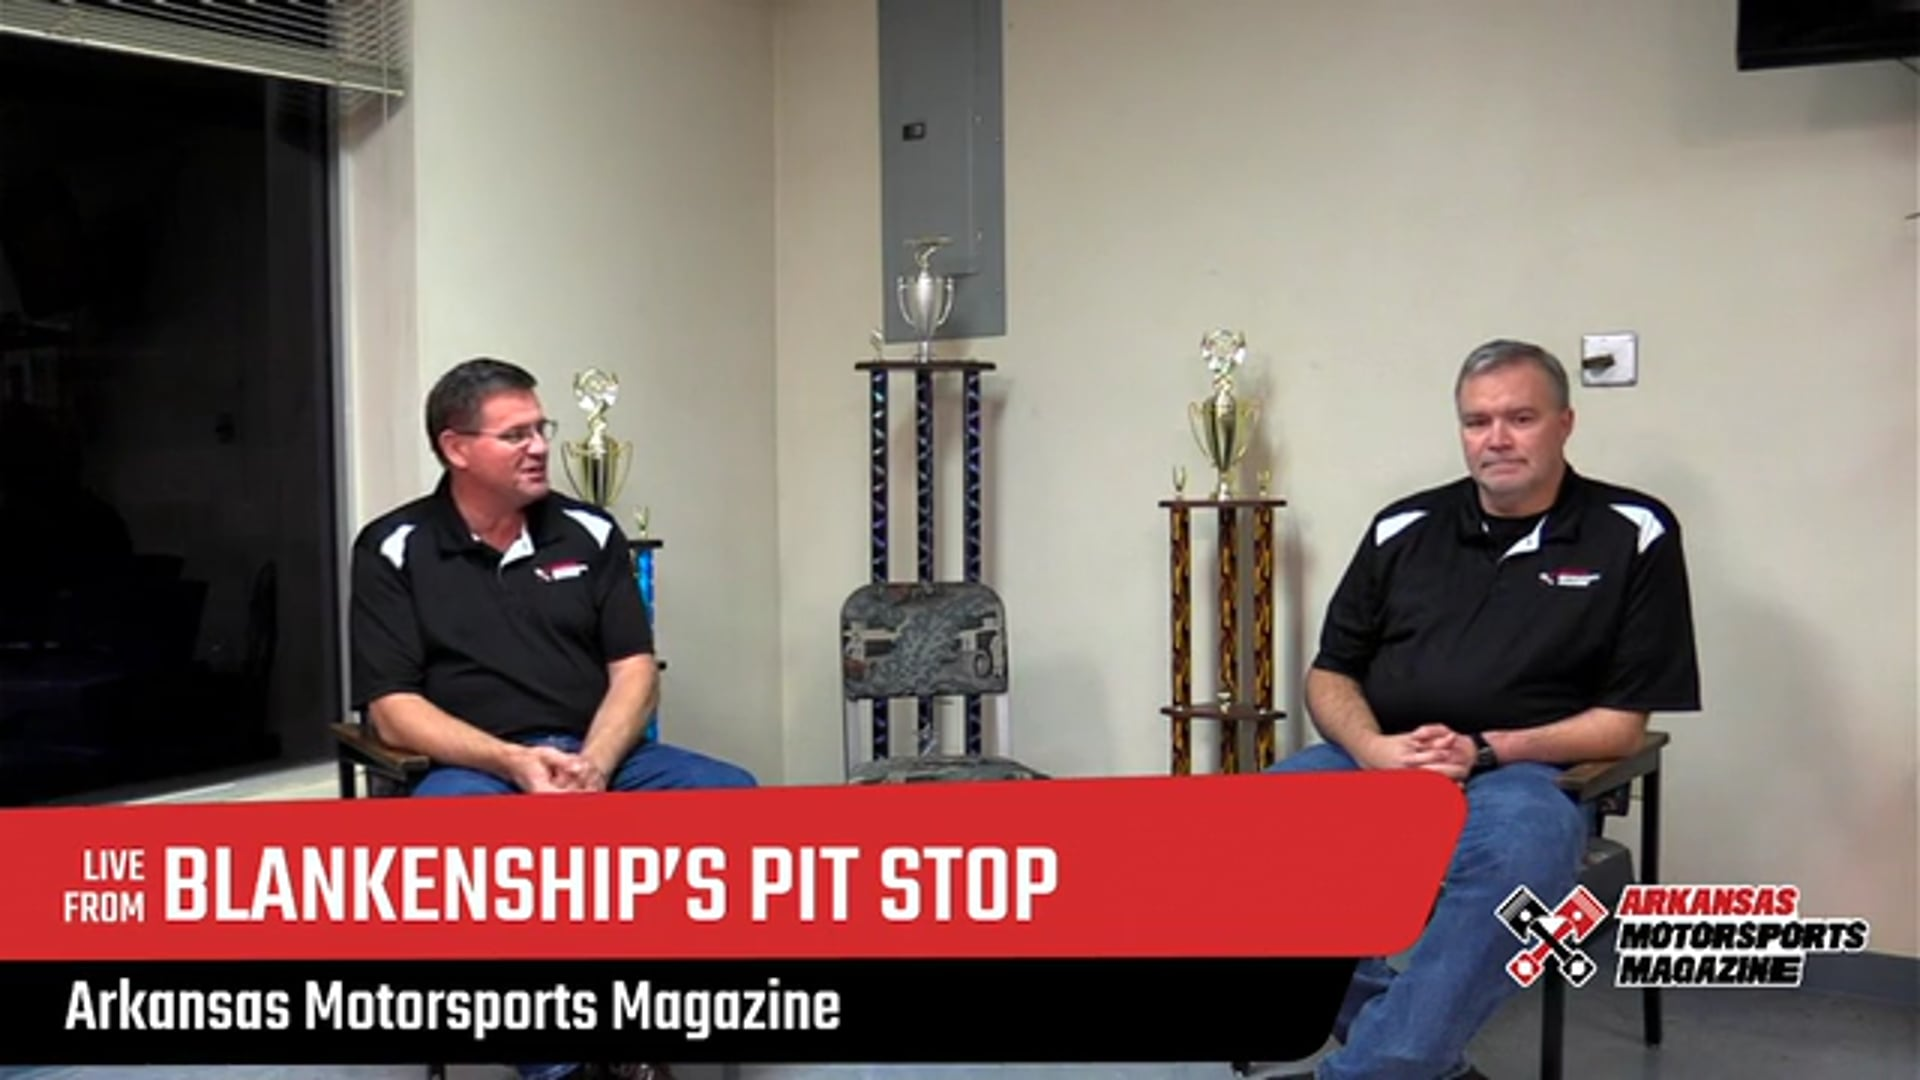 TUESDAY NIGHT TUNE UP - S1:E7 - Danville Arkansas at Blankenship Pit Stop